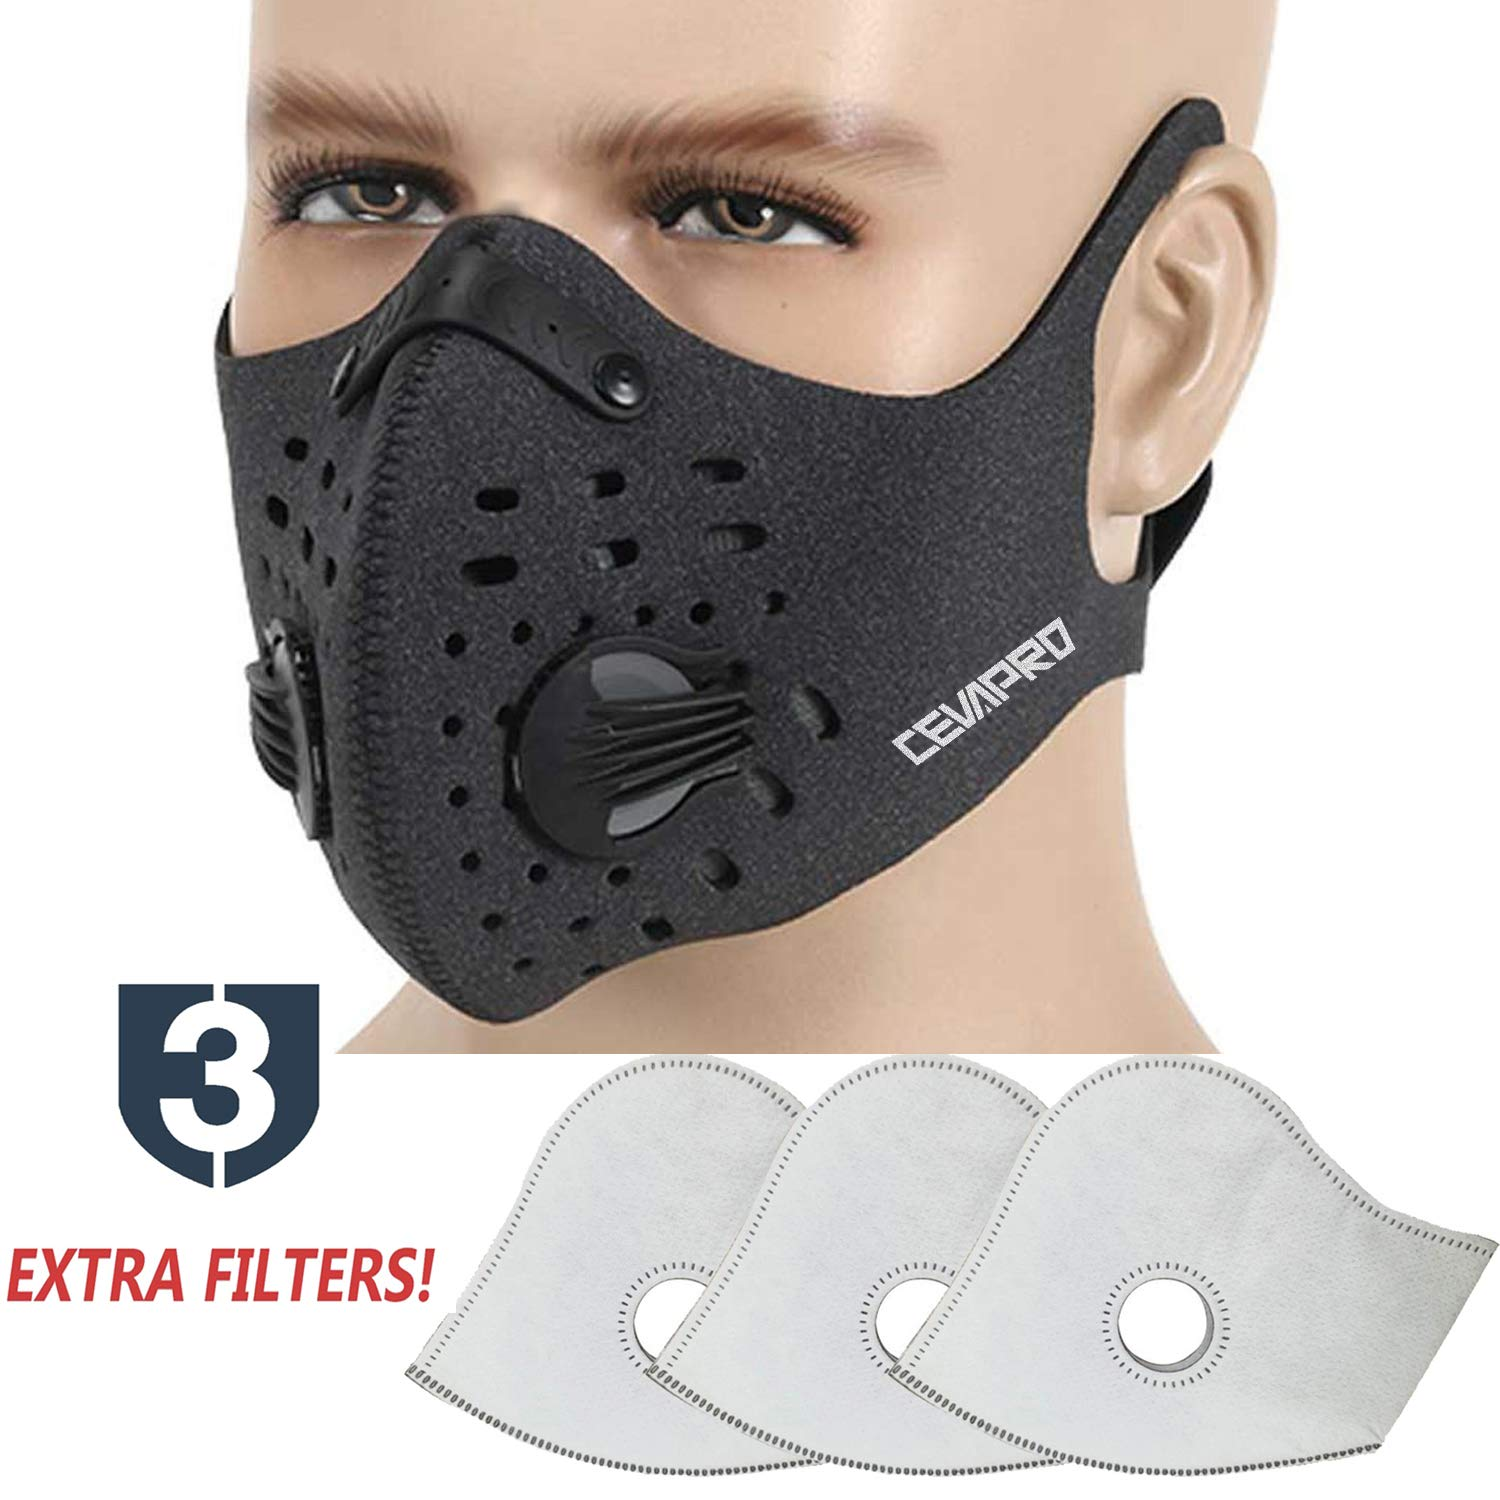 Analytical Professional Full Face Facepiece Respirator For Painting Spraying Work Safety Masks Prevent Organic Vapor Gas Drop Shipping To Have A Unique National Style Party Masks